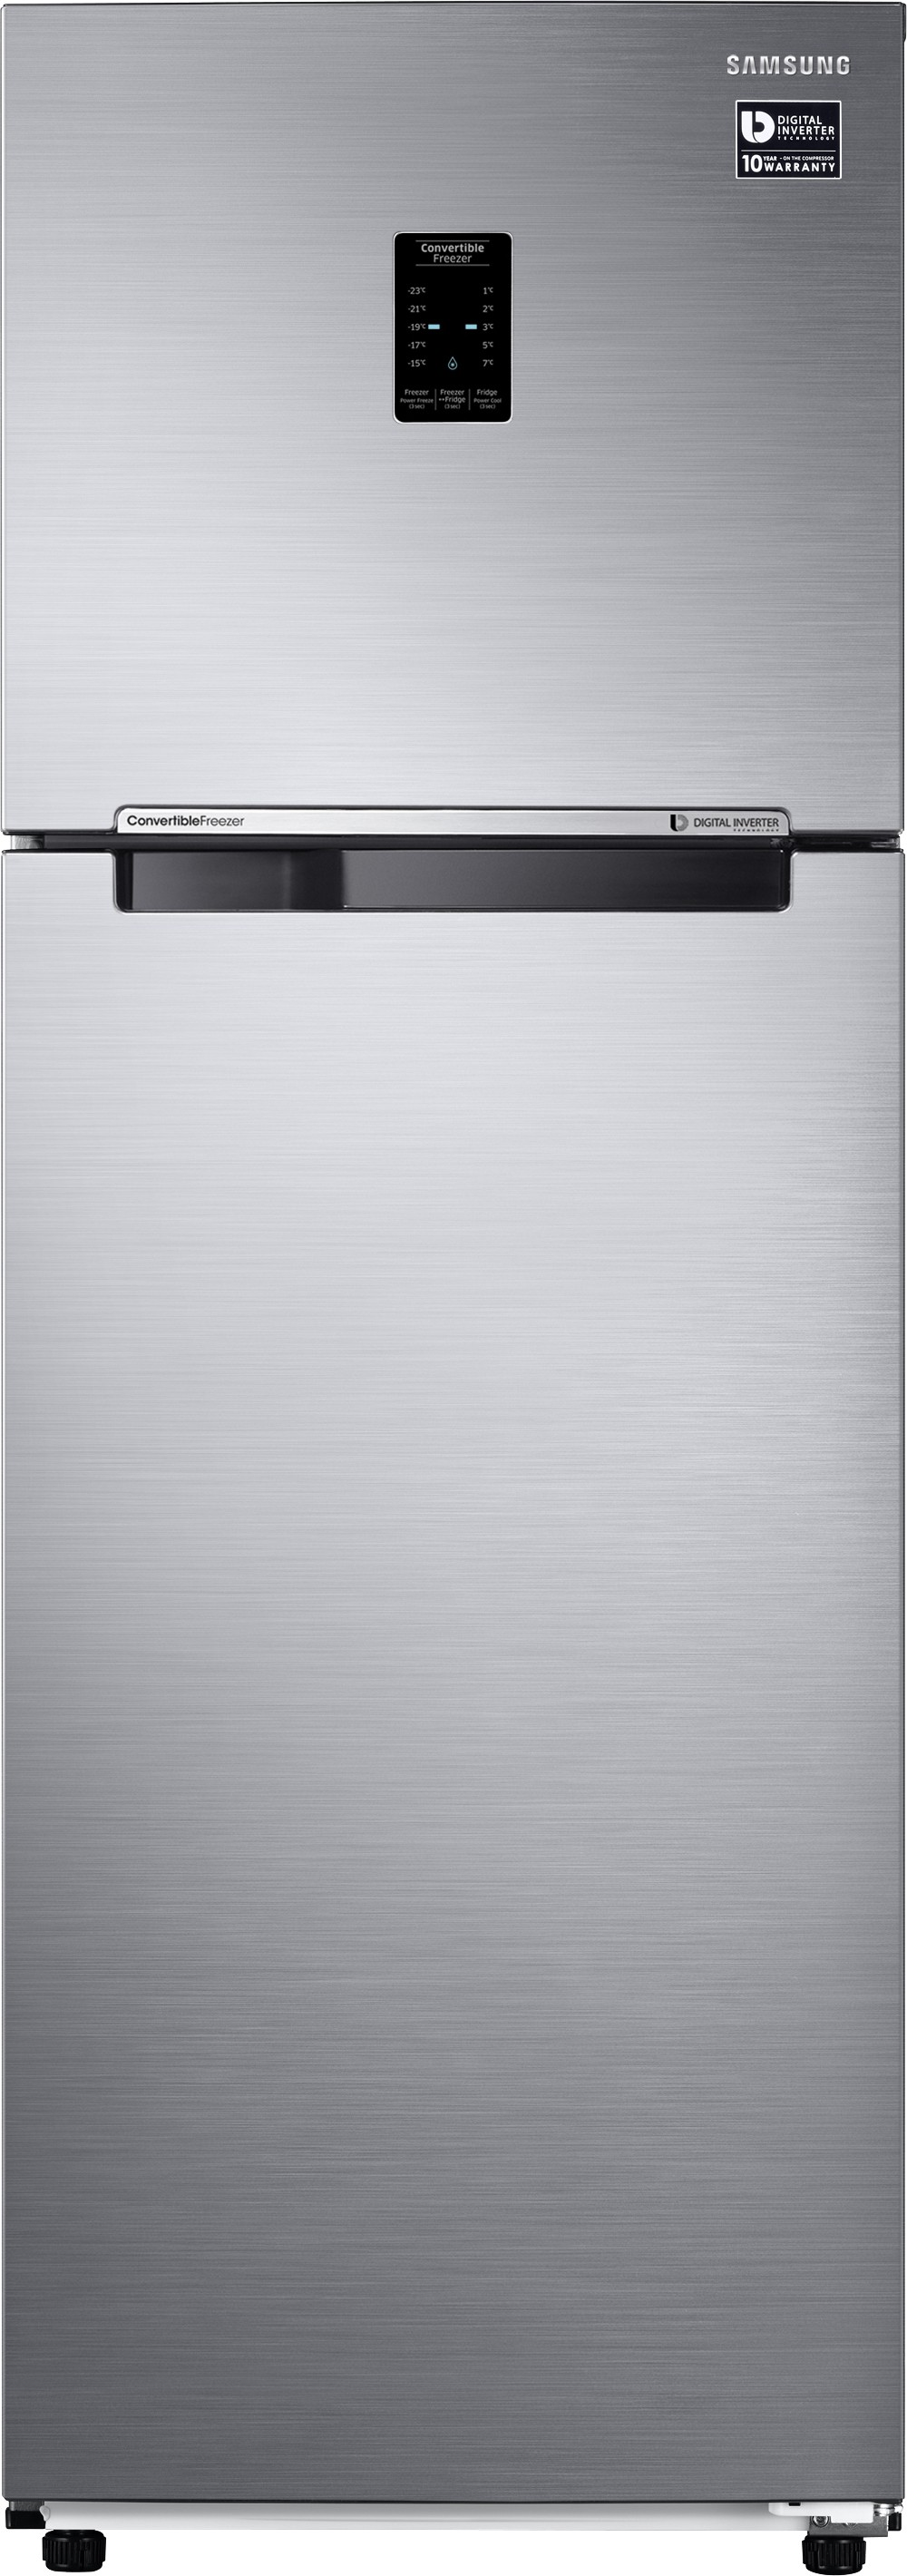 Deals - Bangalore - 251 L and Above <br> Samsung Frost Free Refrigerators<br> Category - home_kitchen<br> Business - Flipkart.com